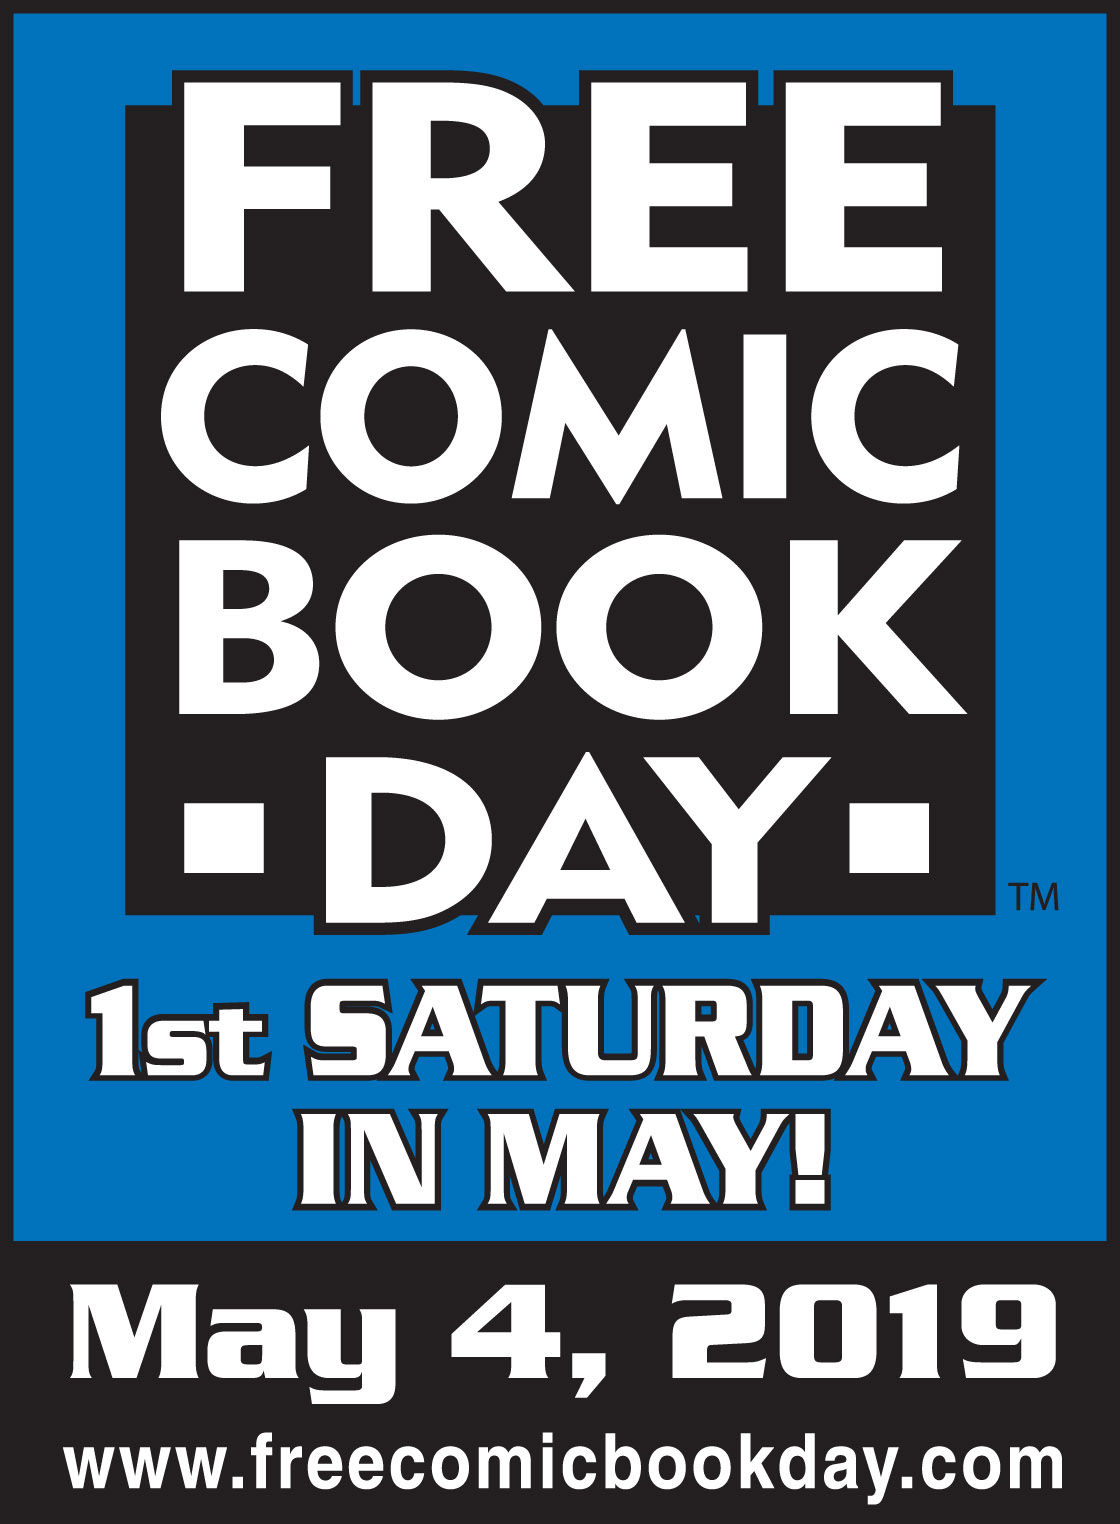 FCBD 2019 Site Downloads - Free Comic Book Day